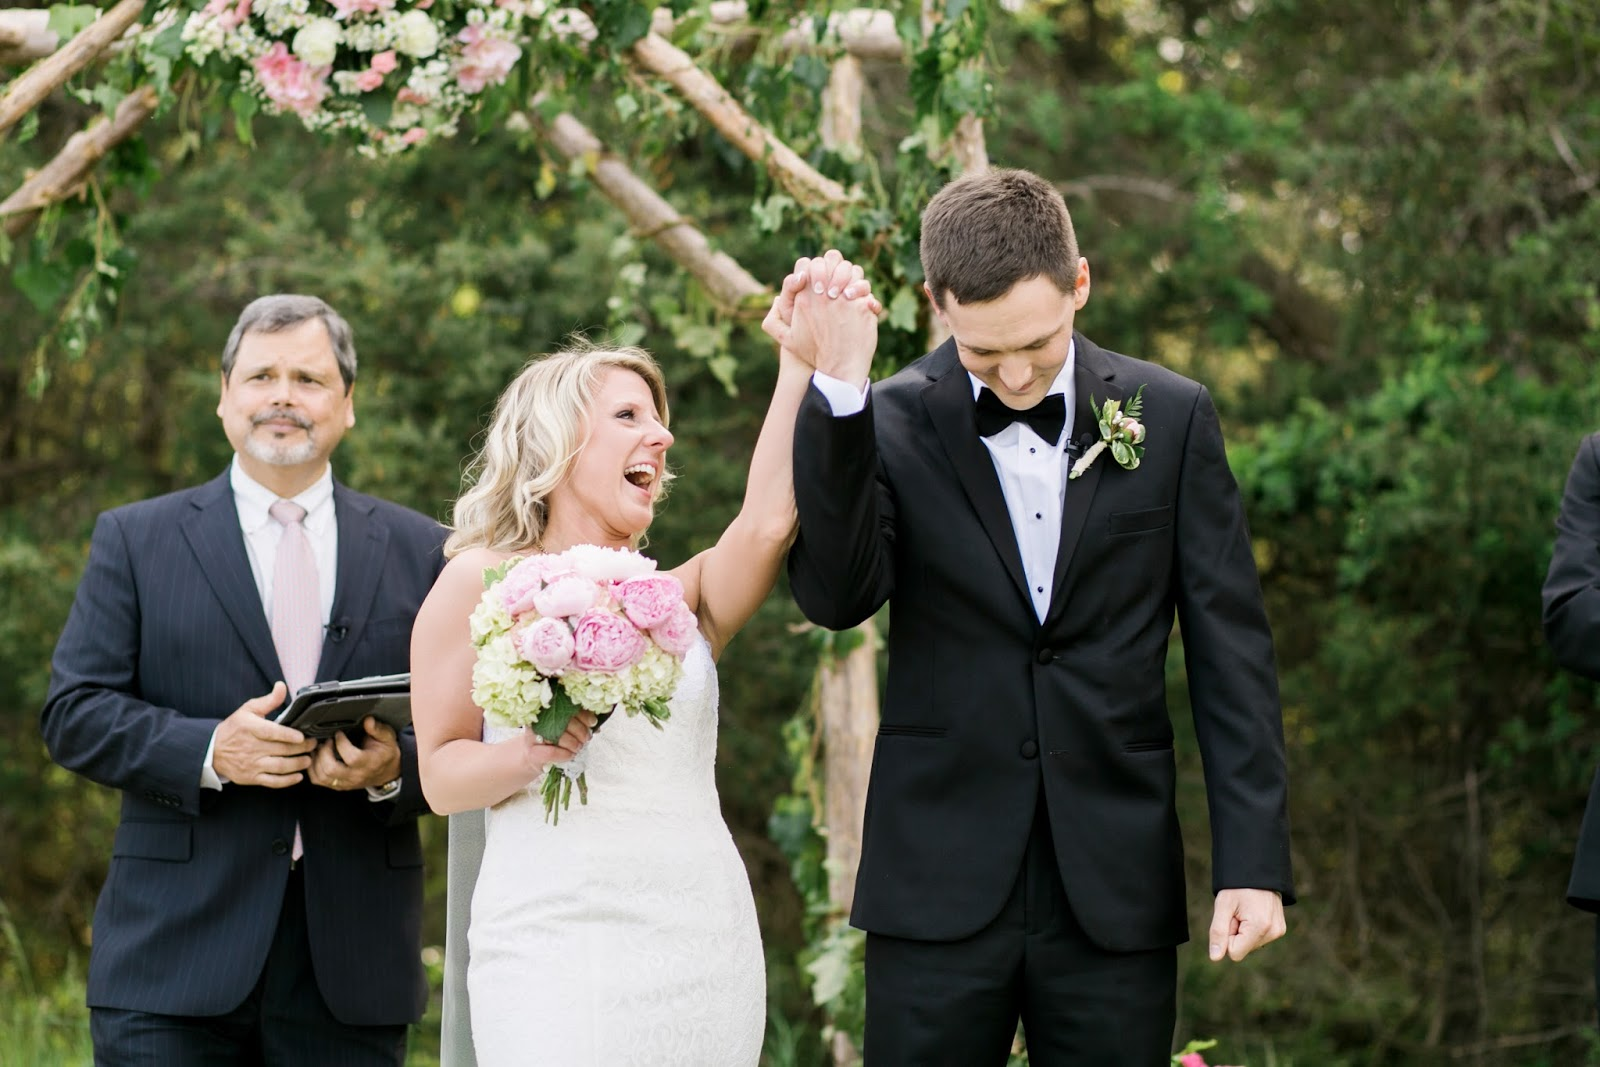 The Southeastern Bride | Amy Nicole Photography